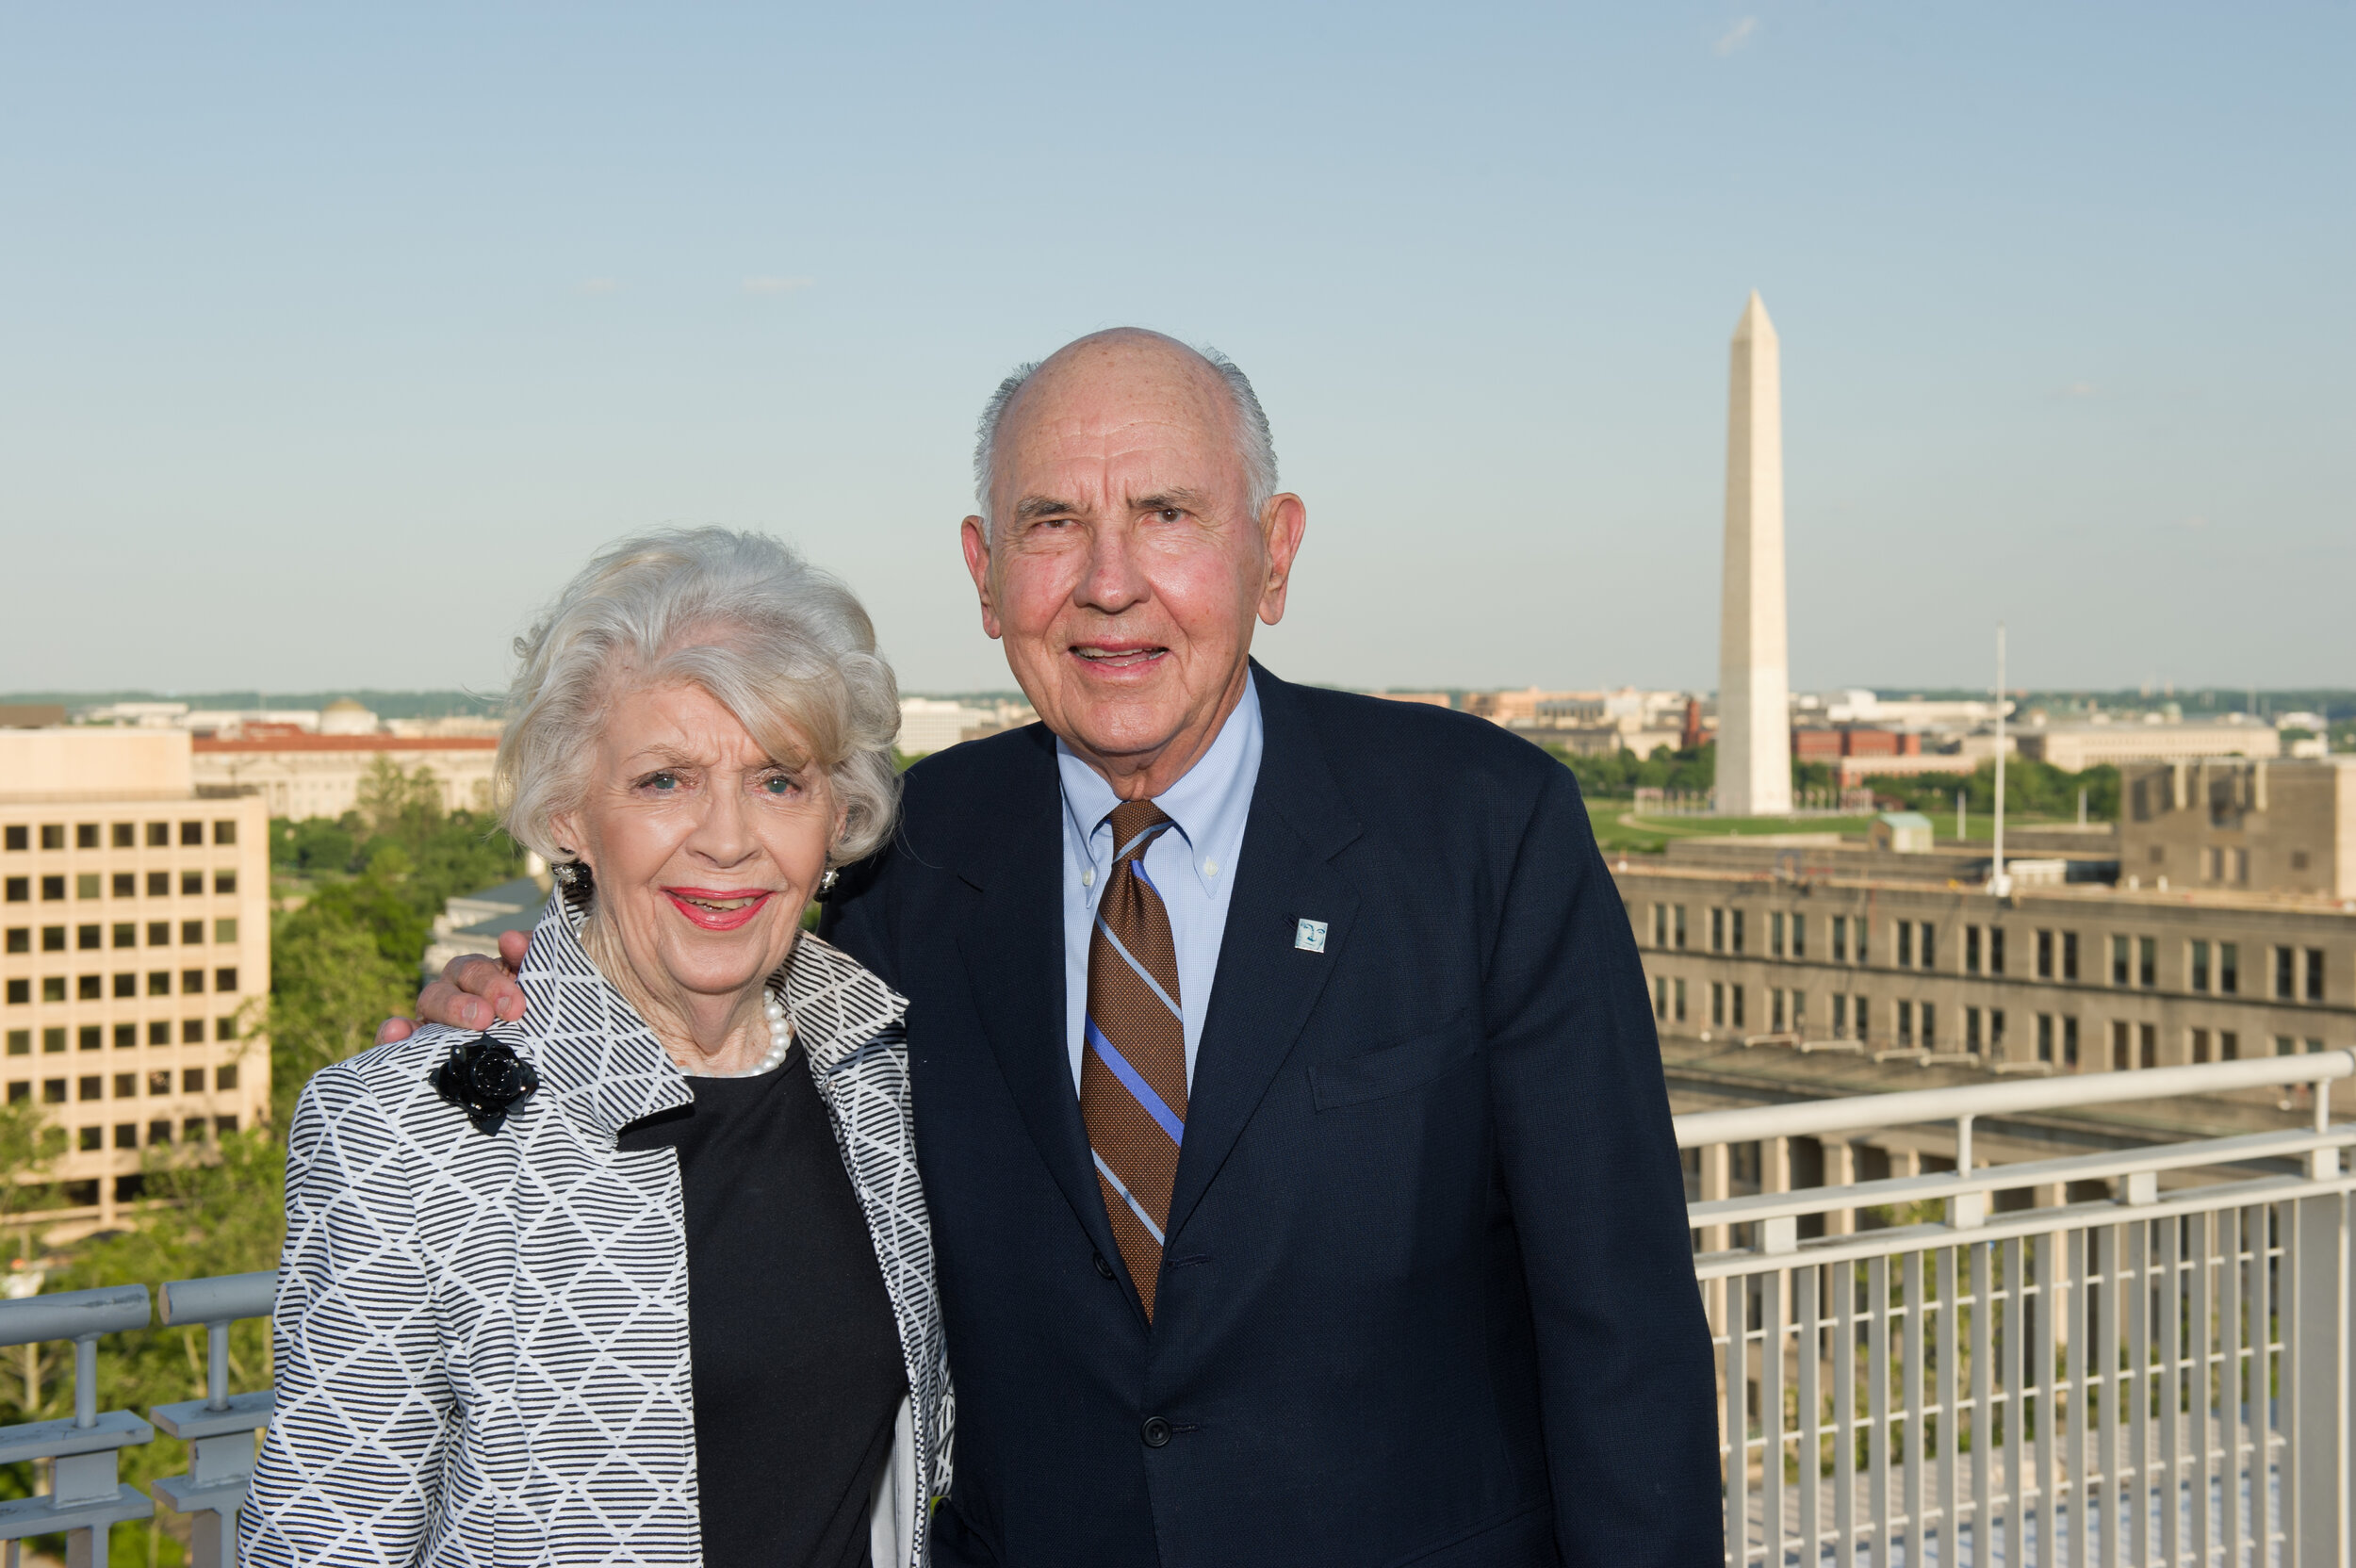 Photo of Mr. and Mrs. Clark courtesy of the Clark Foundation.